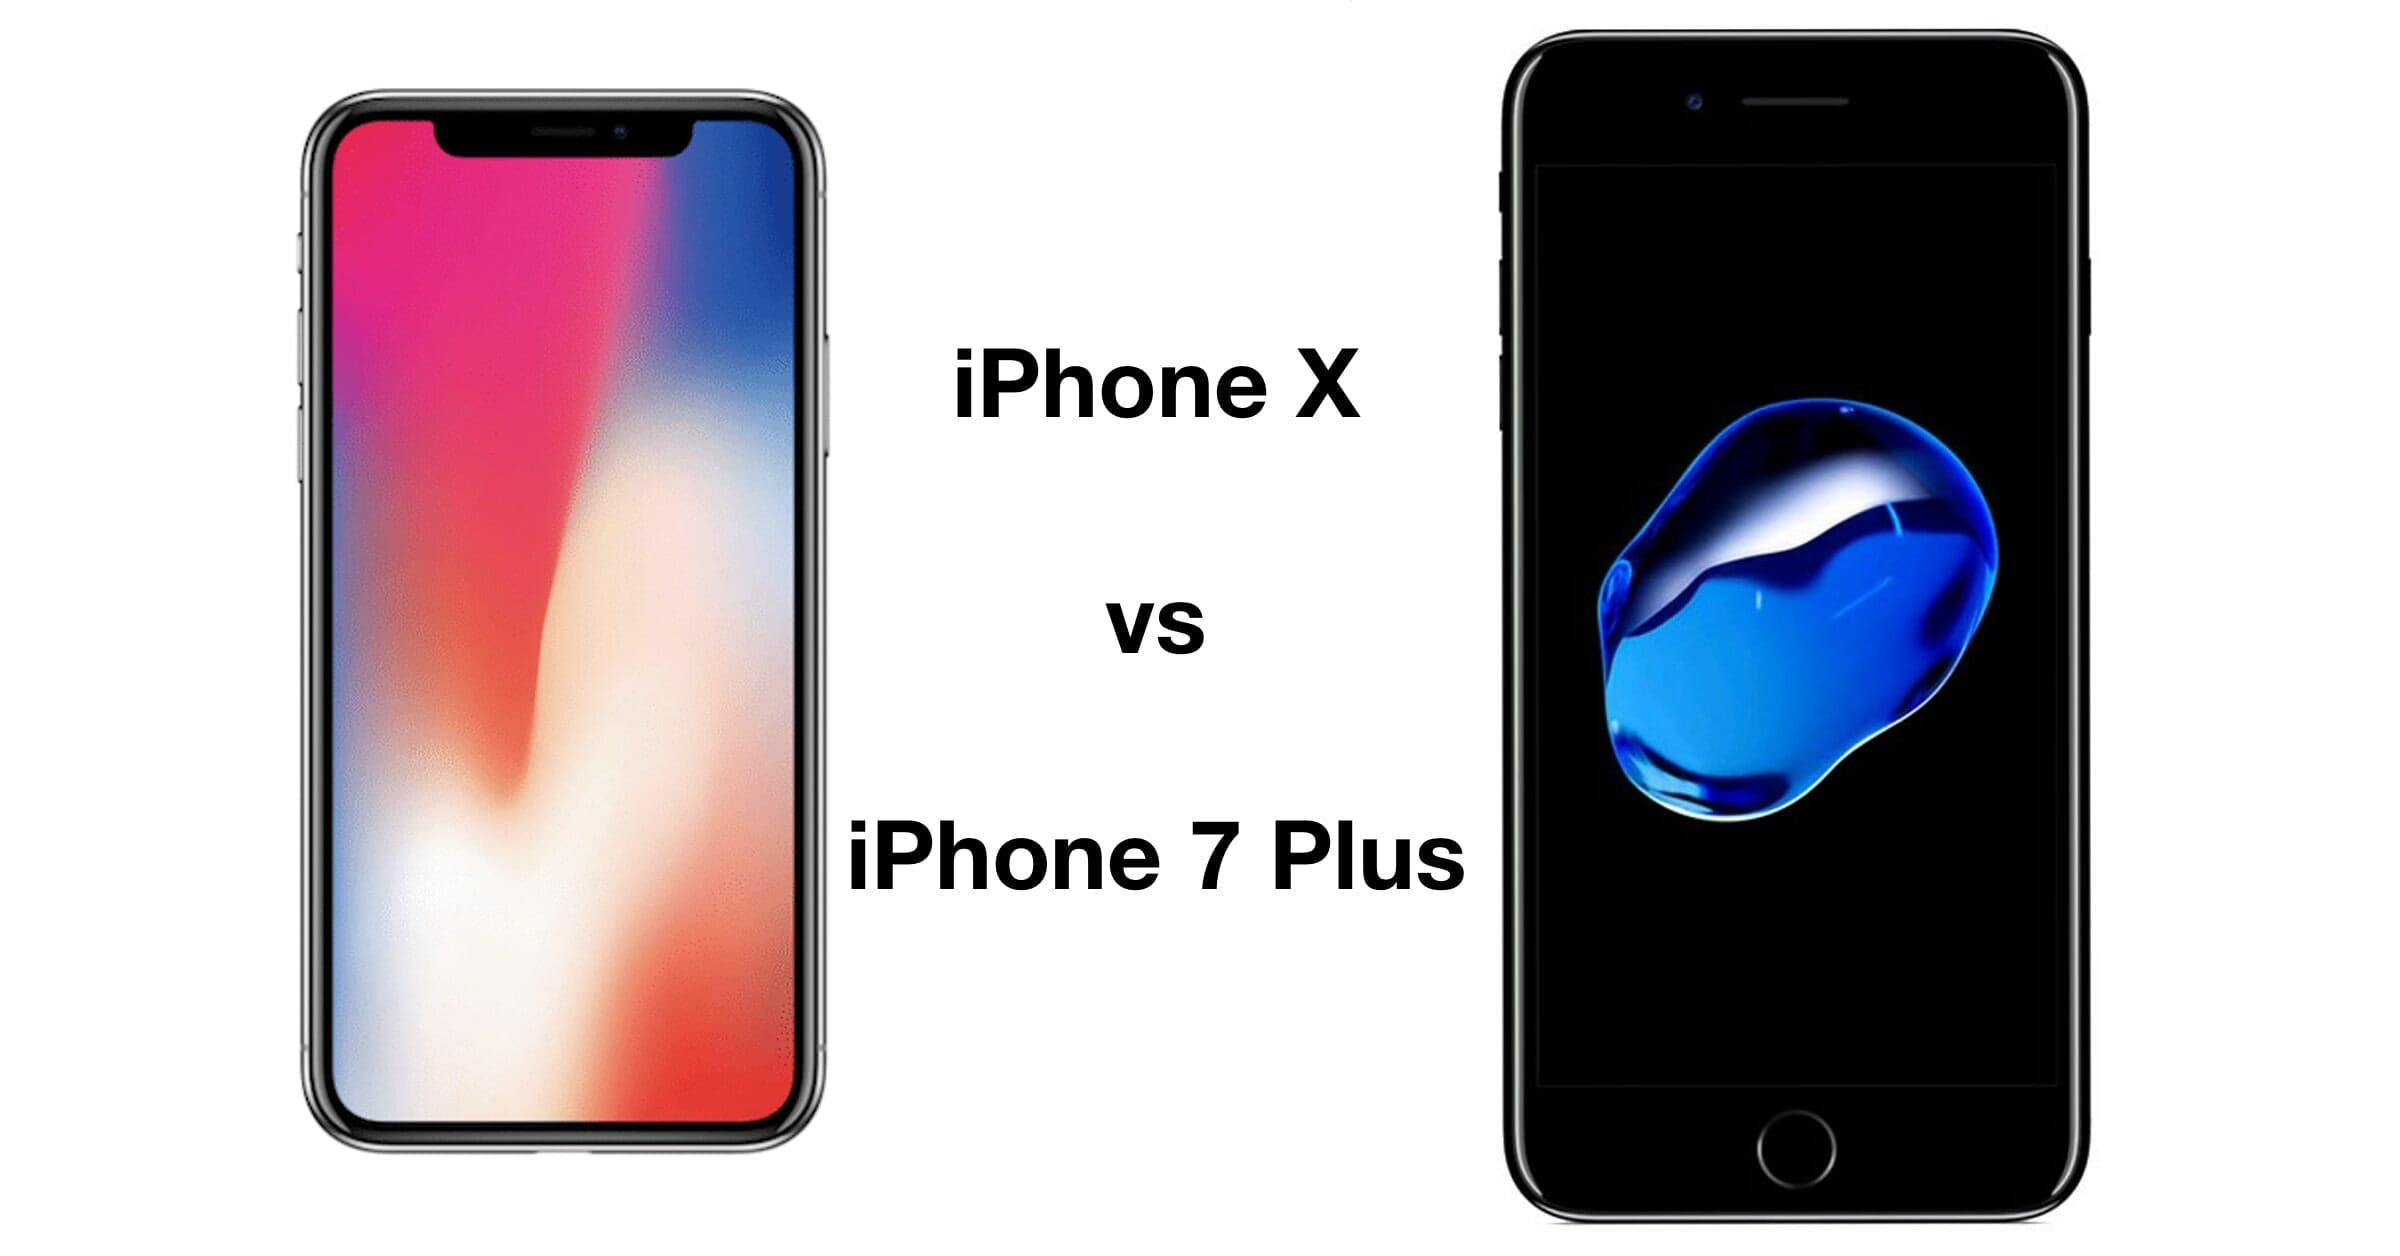 iPhone X vs. iPhone 7 Plus comparison and in-depth iPhone X review